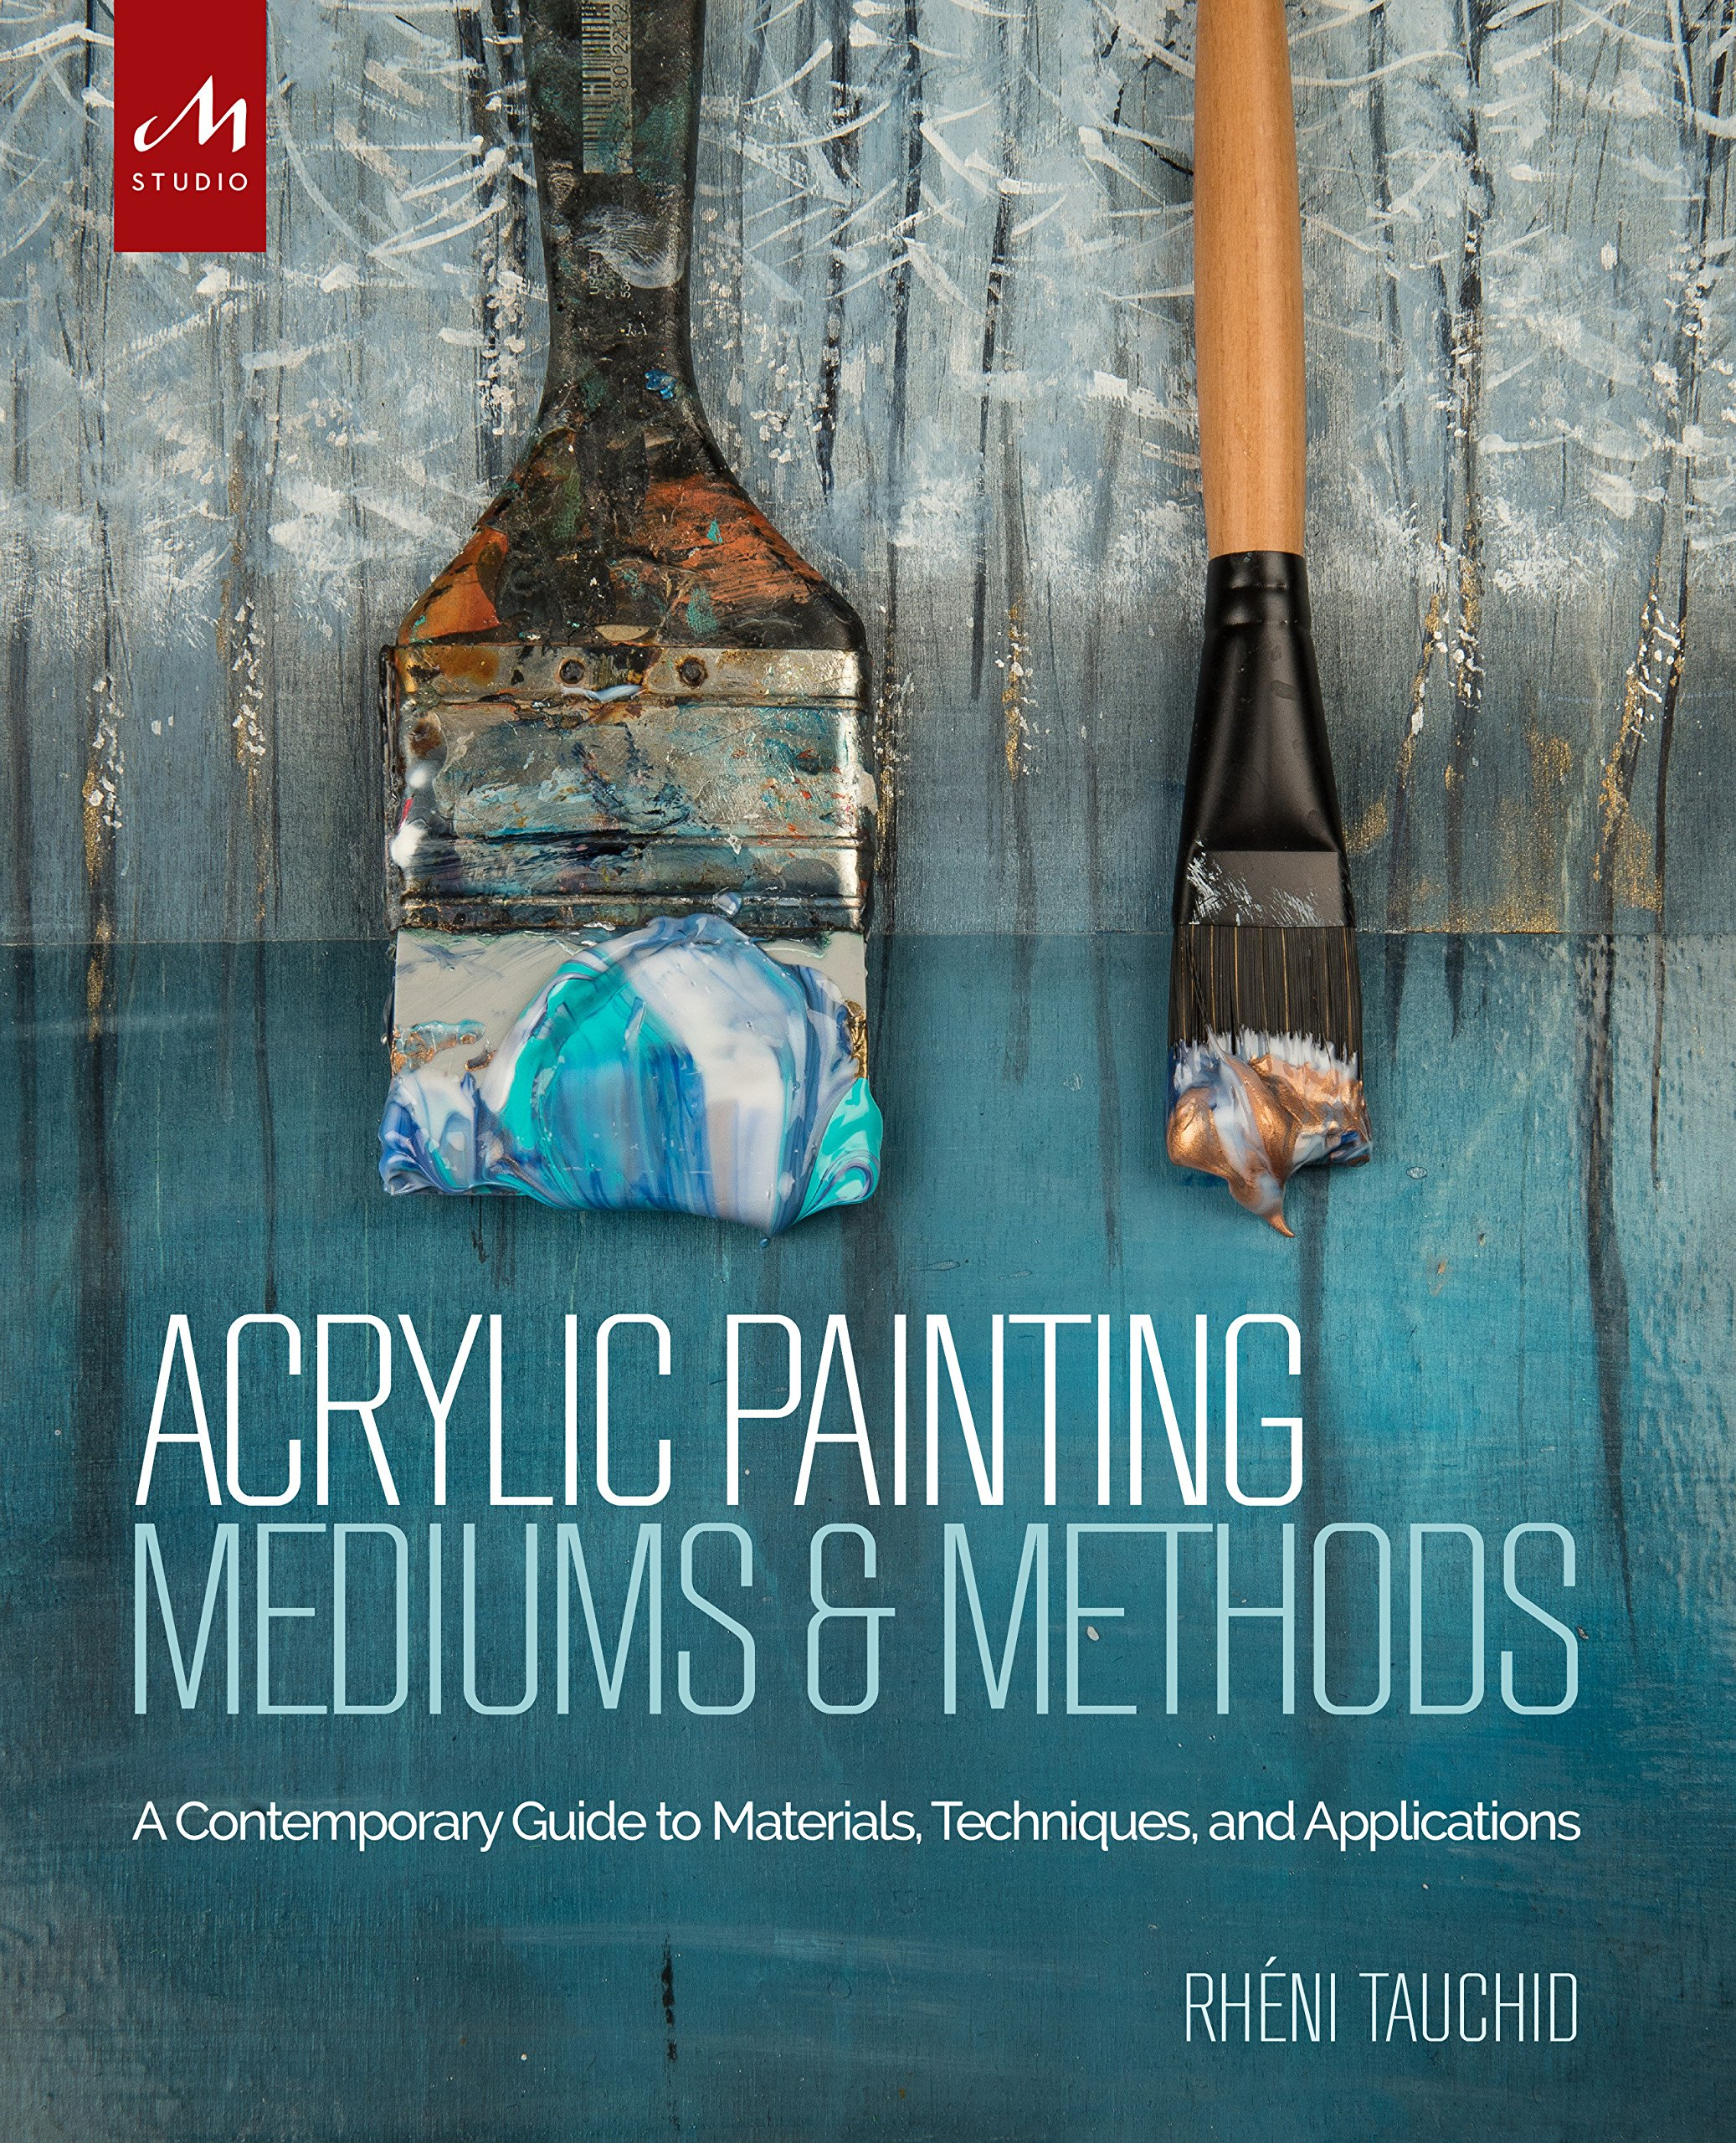 Acrylic Painting Mediums and Methods: A Contemporary Guide